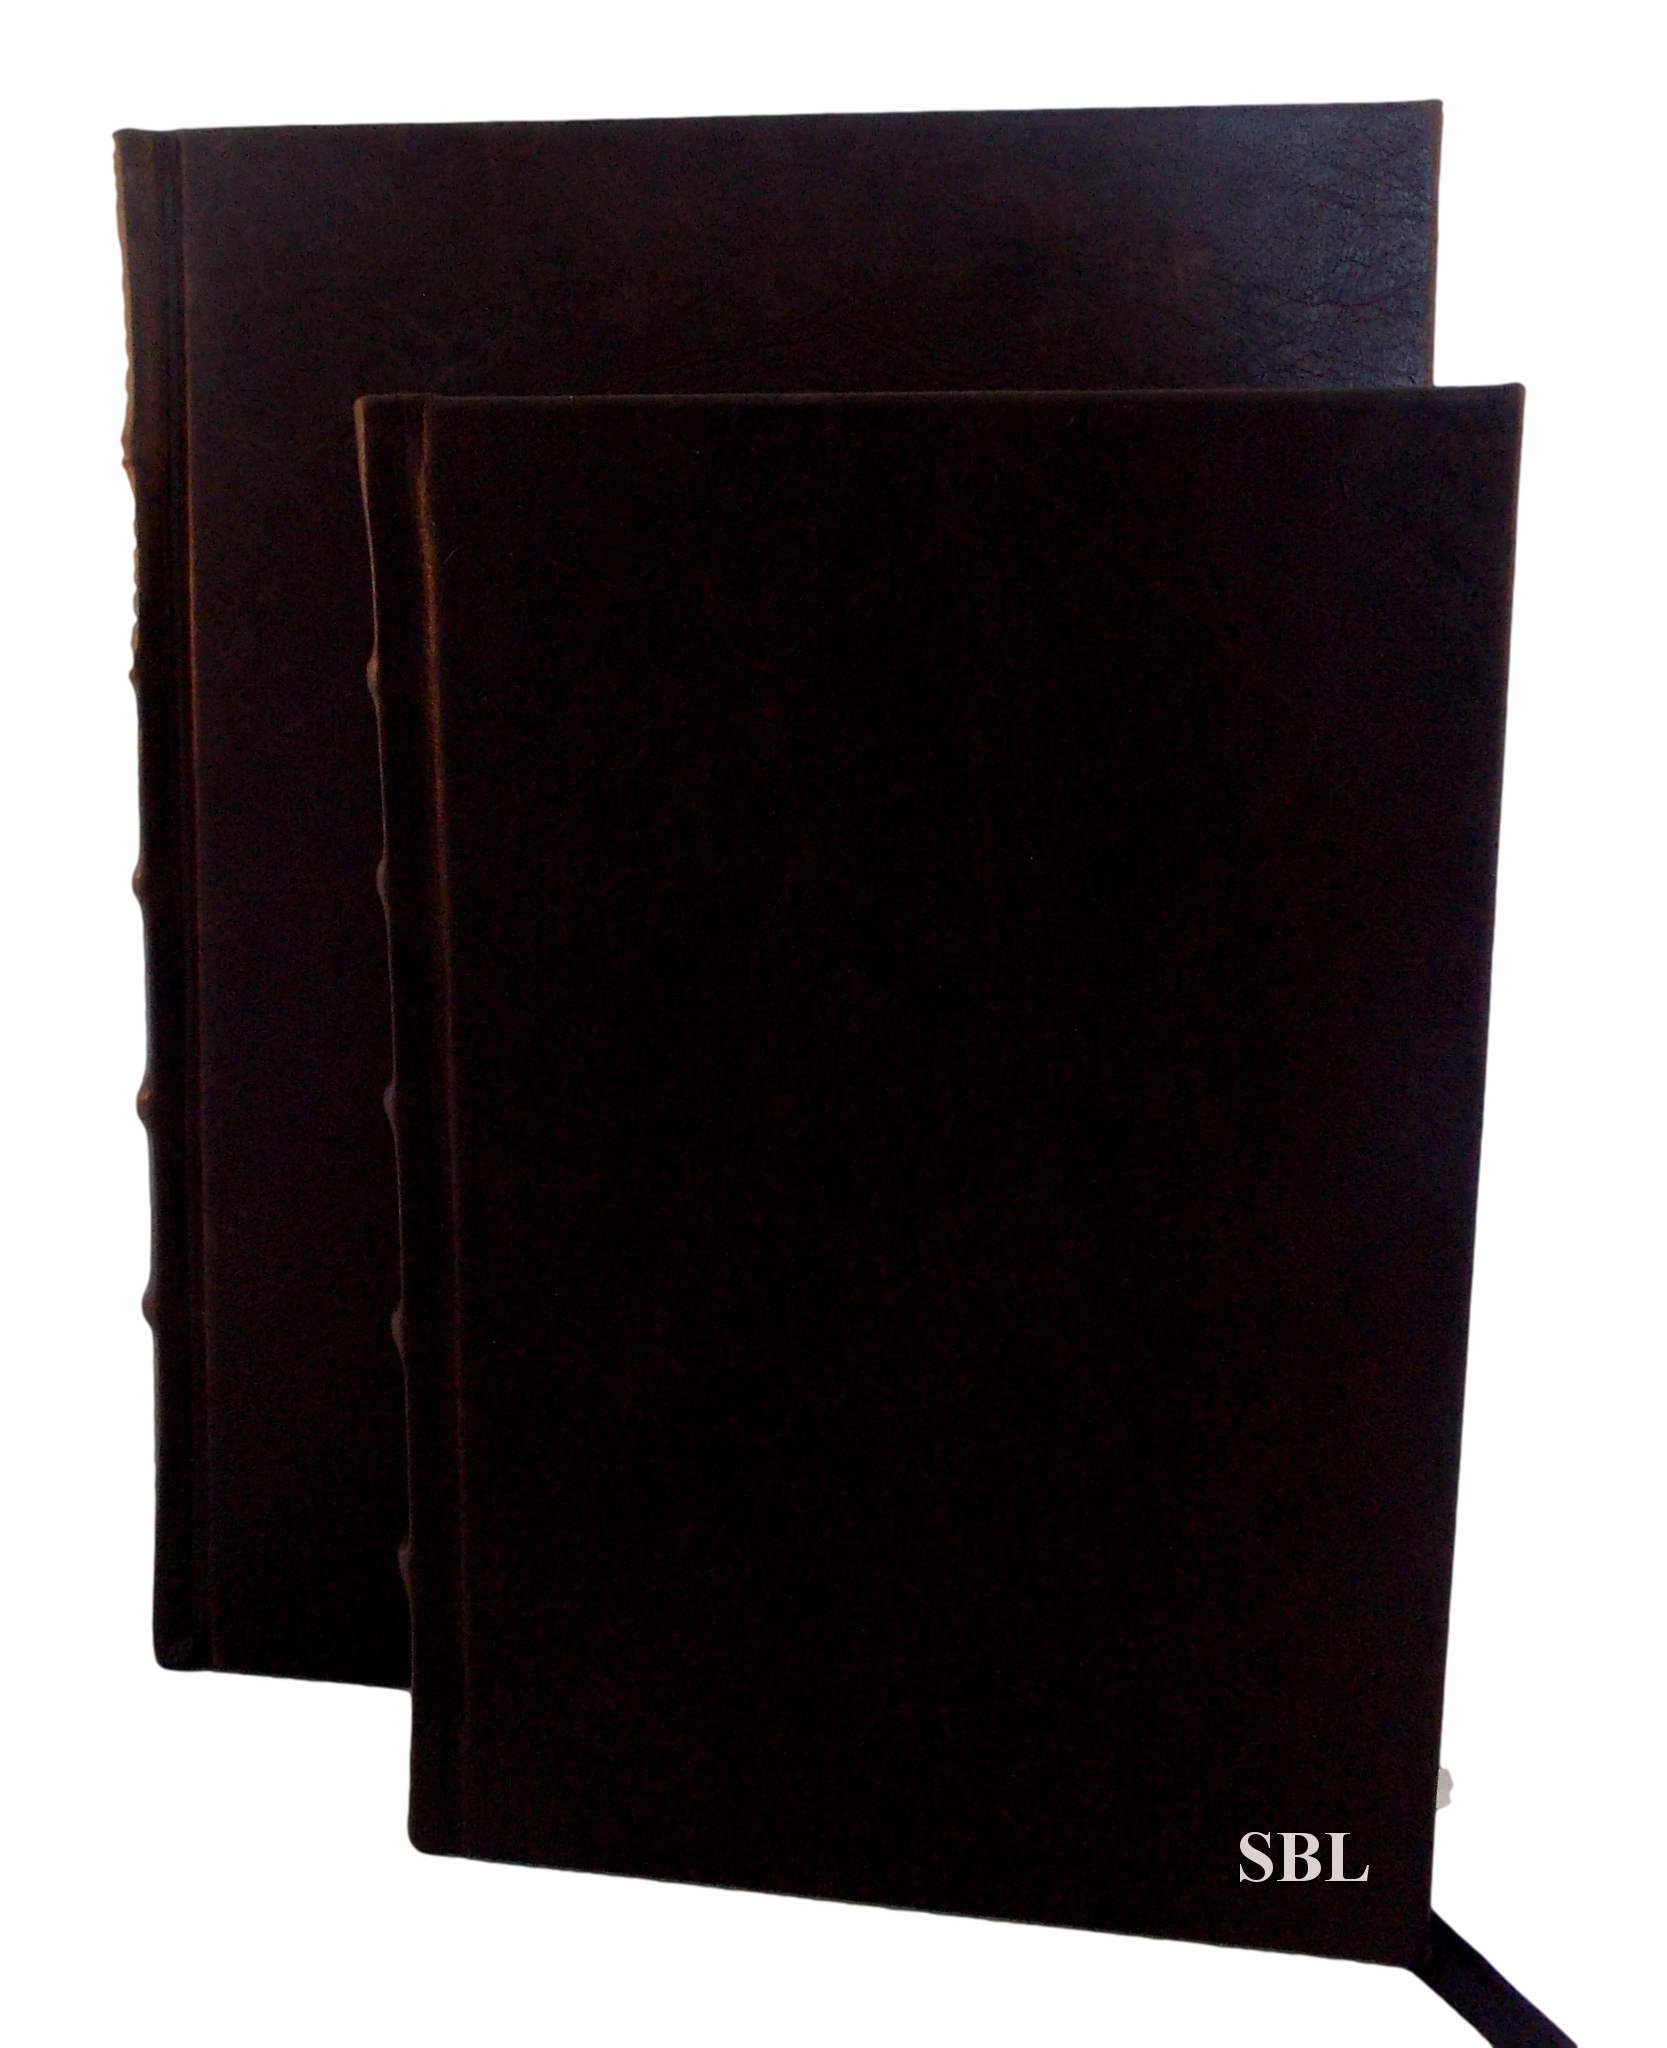 Full Leather Journals available in 2 sizes